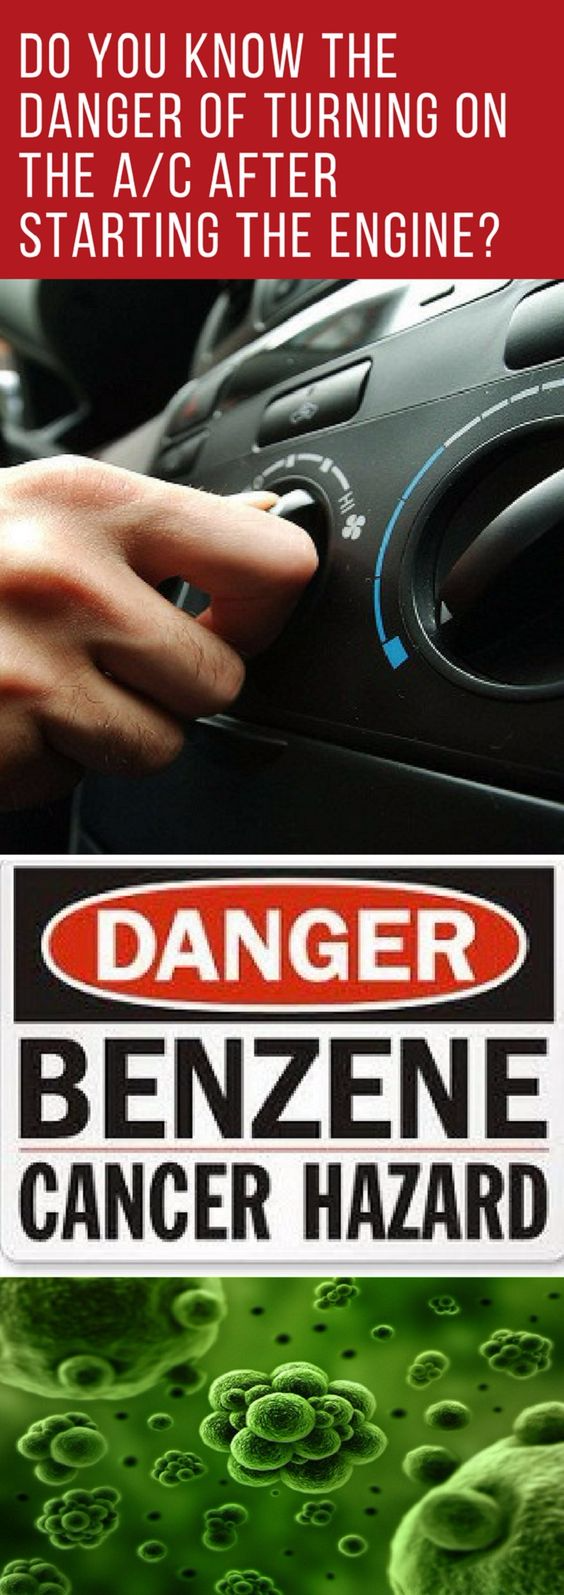 Do you know the danger of turning on the A/C after starting the engine?